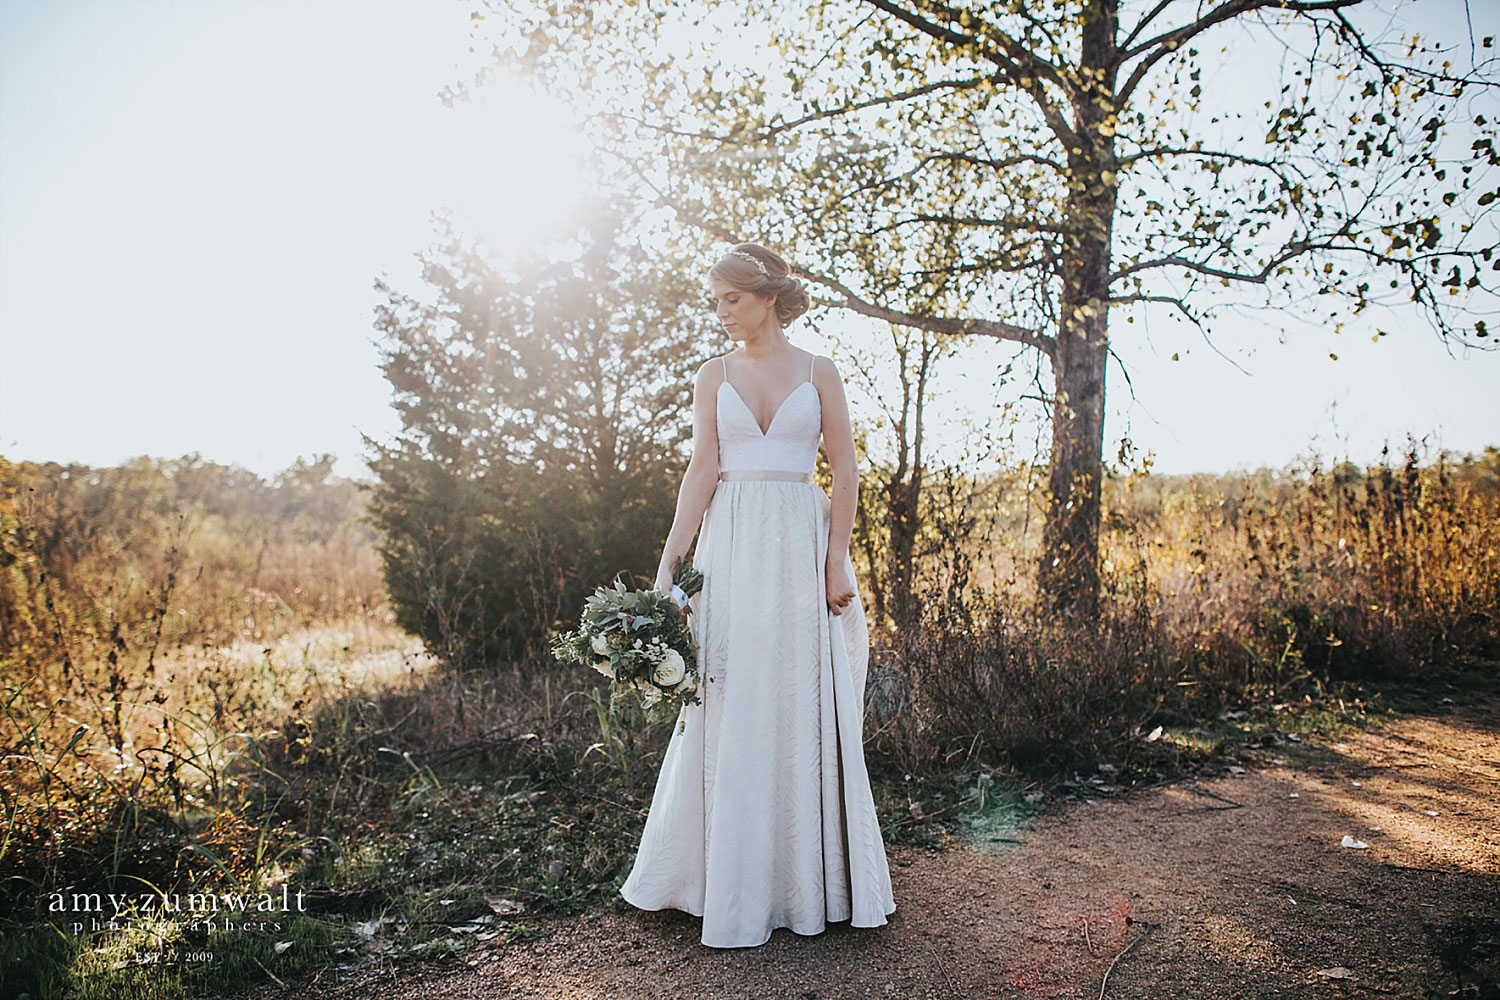 Bride holding a greenery bouquet in woodland scenery